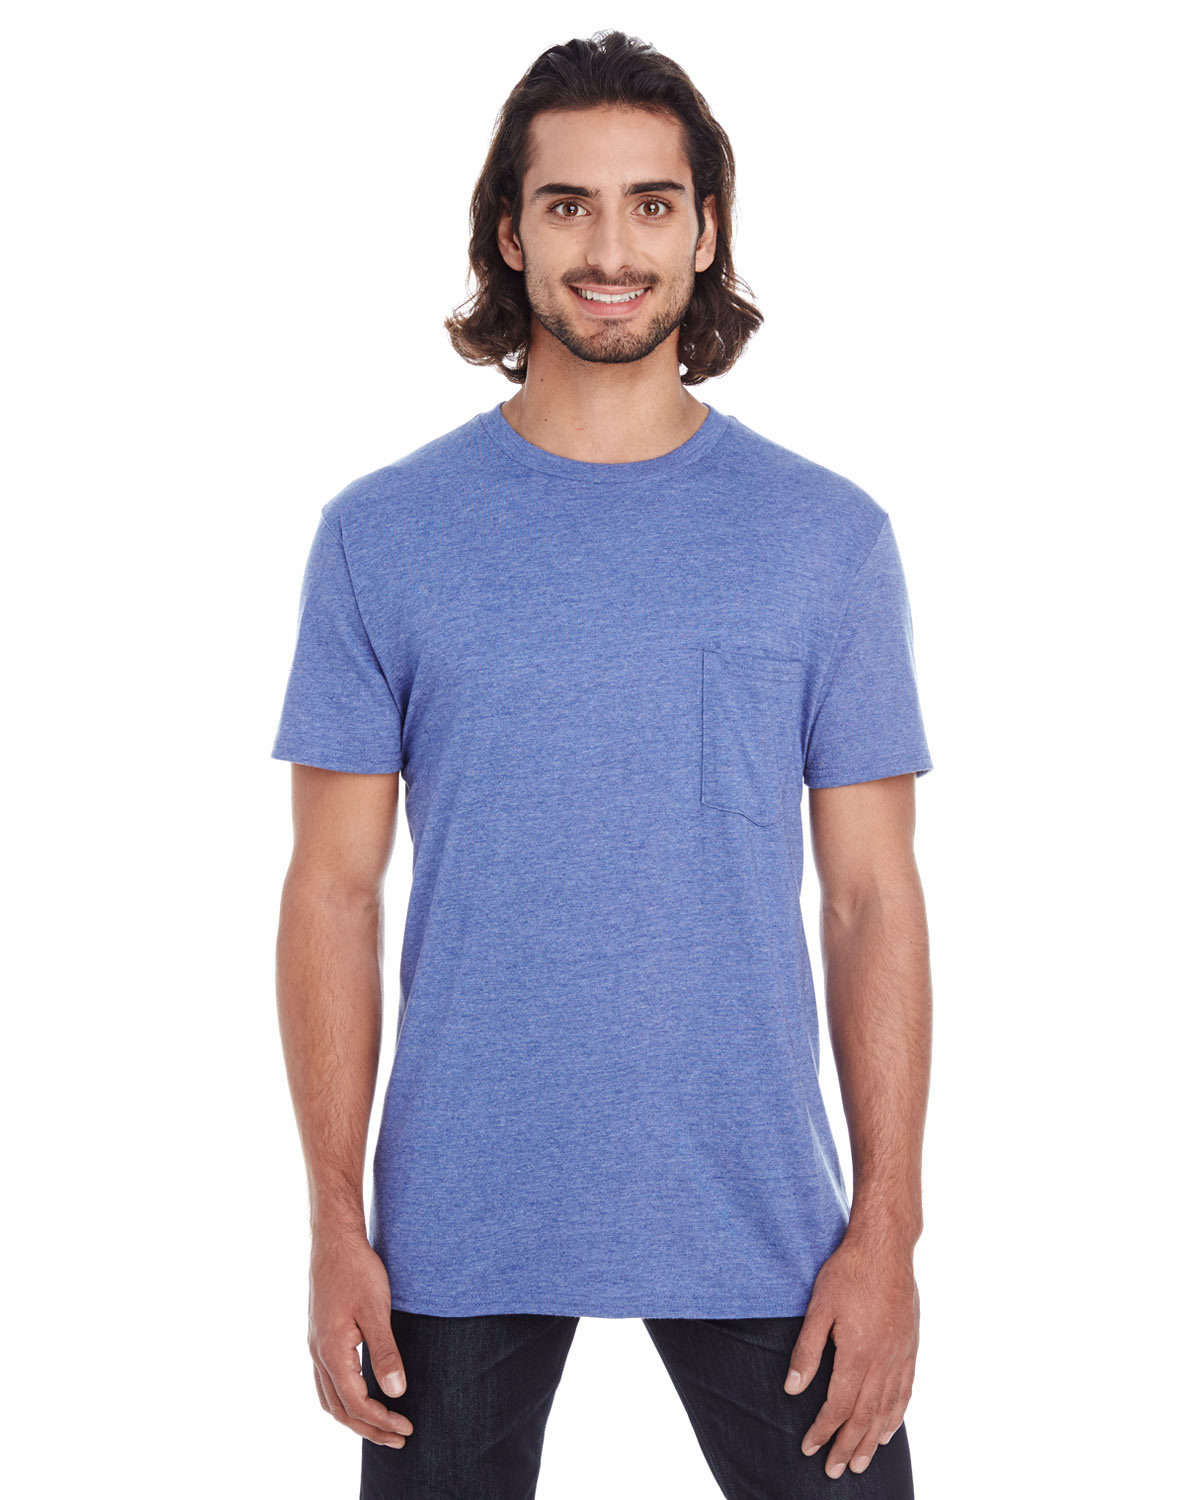 Anvil Adult Lightweight Pocket T-Shirt HEATHER BLUE